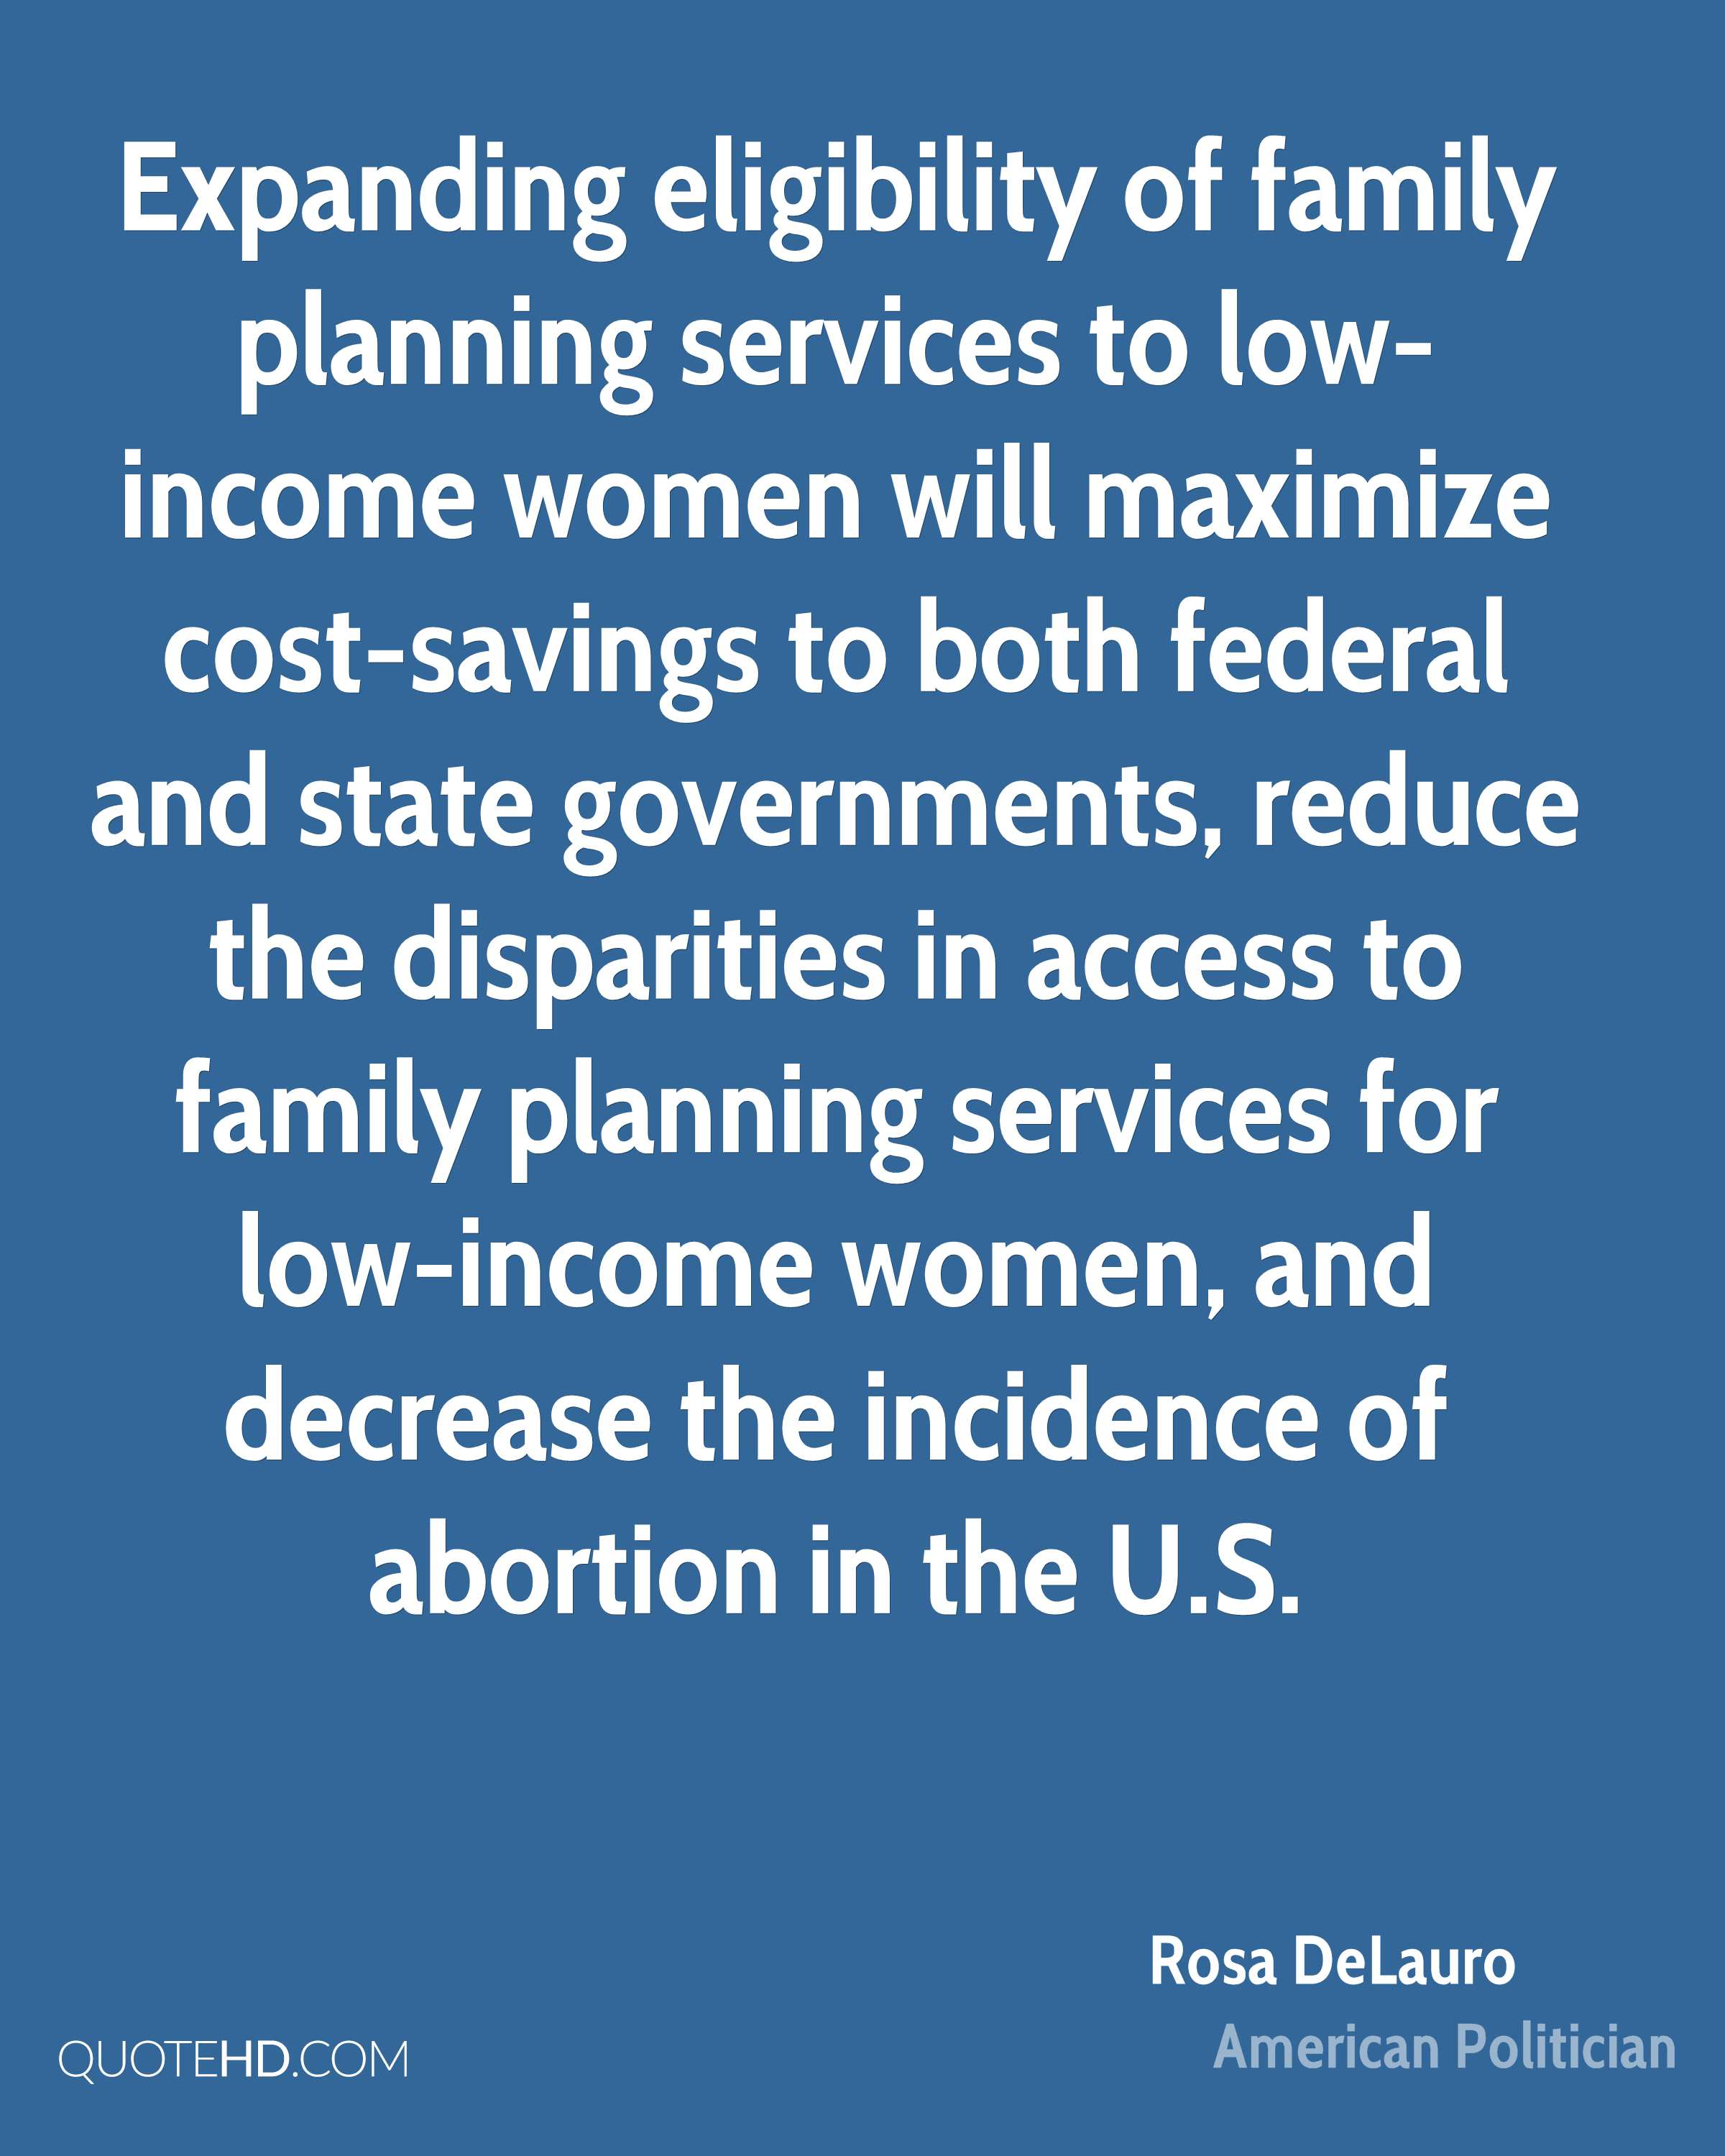 Expanding eligibility of family planning services to low-income women will maximize cost-savings to both federal and state governments, reduce the disparities in access to family planning services for low-income women, and decrease the incidence of abortion in the U.S.